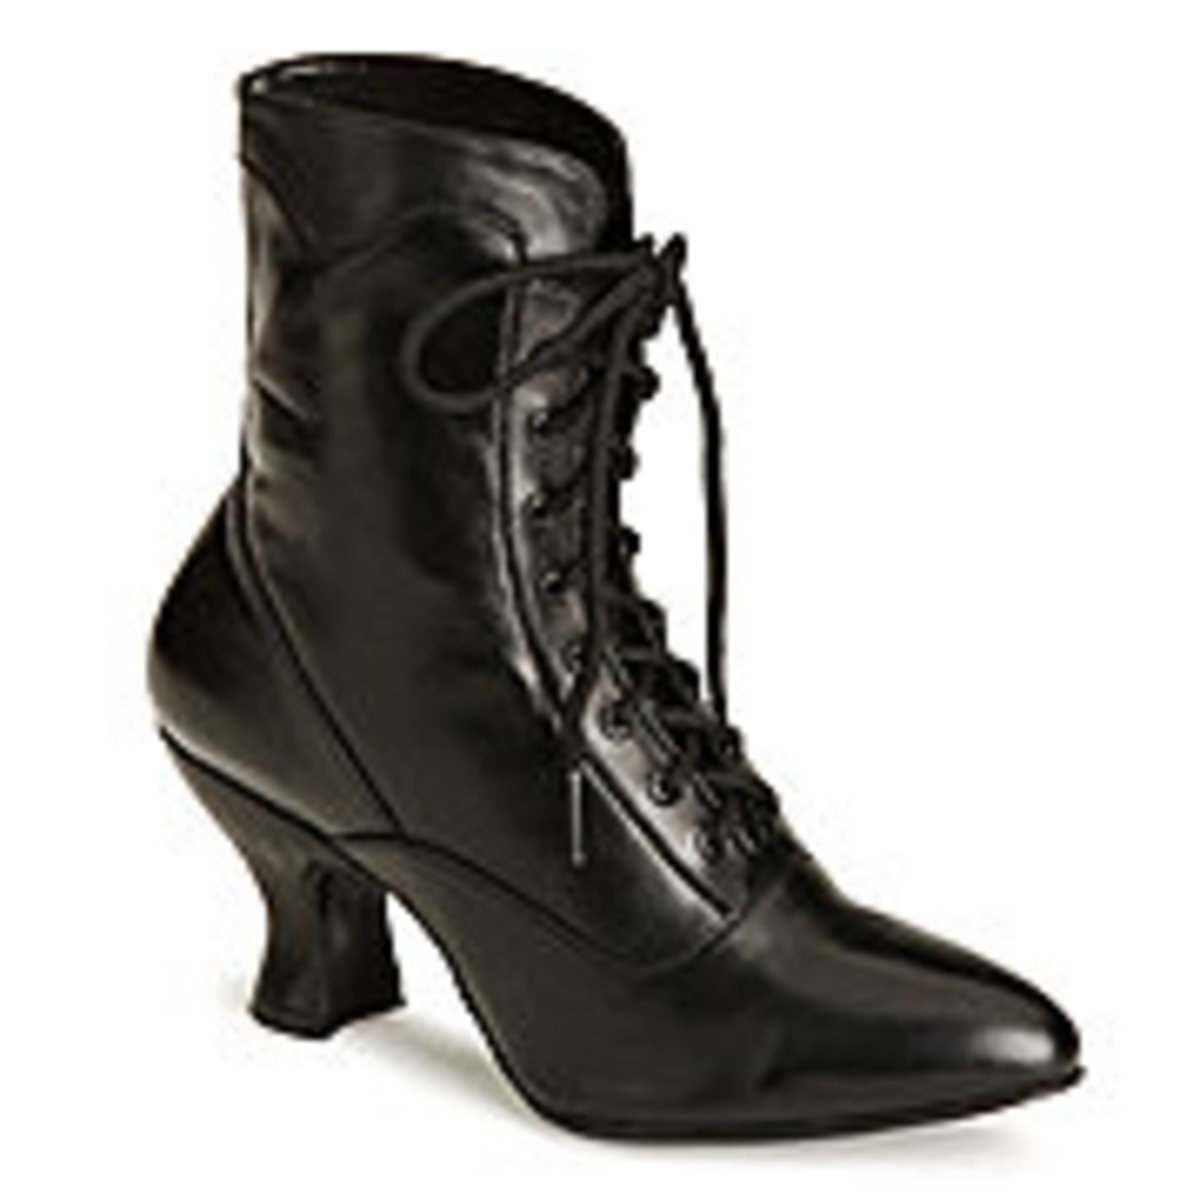 Black lace up Victorian Boots